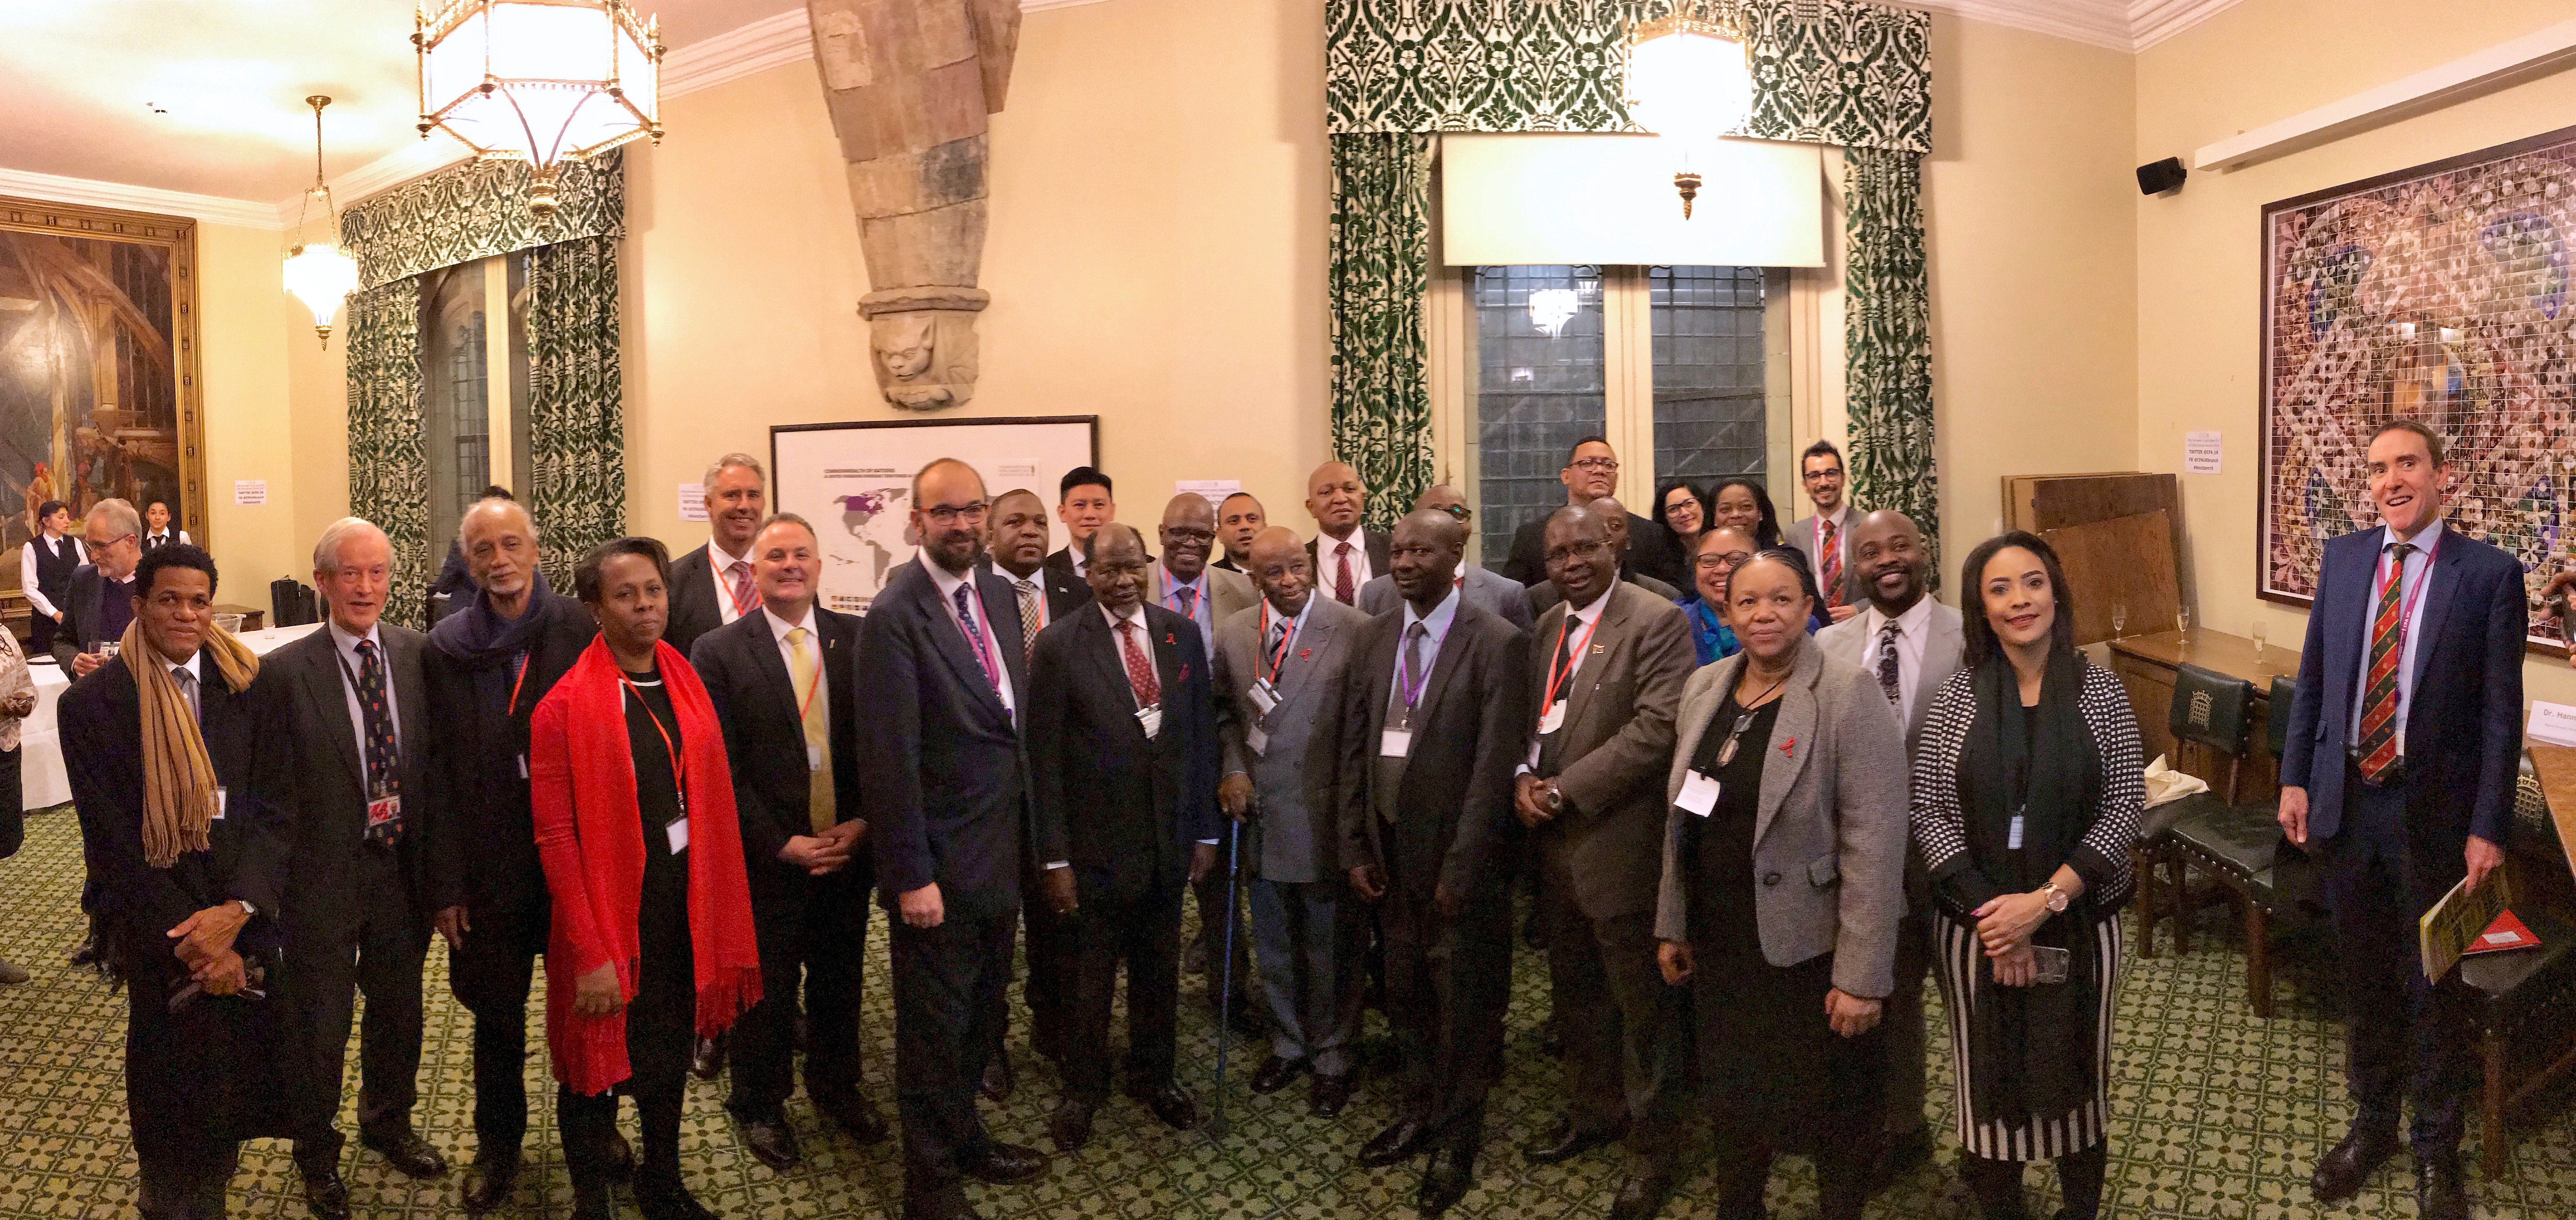 Group photo with HE Festus Mogae, Former President of Botswana, and HE Joaquim Chissano, Former President of  Mozambique